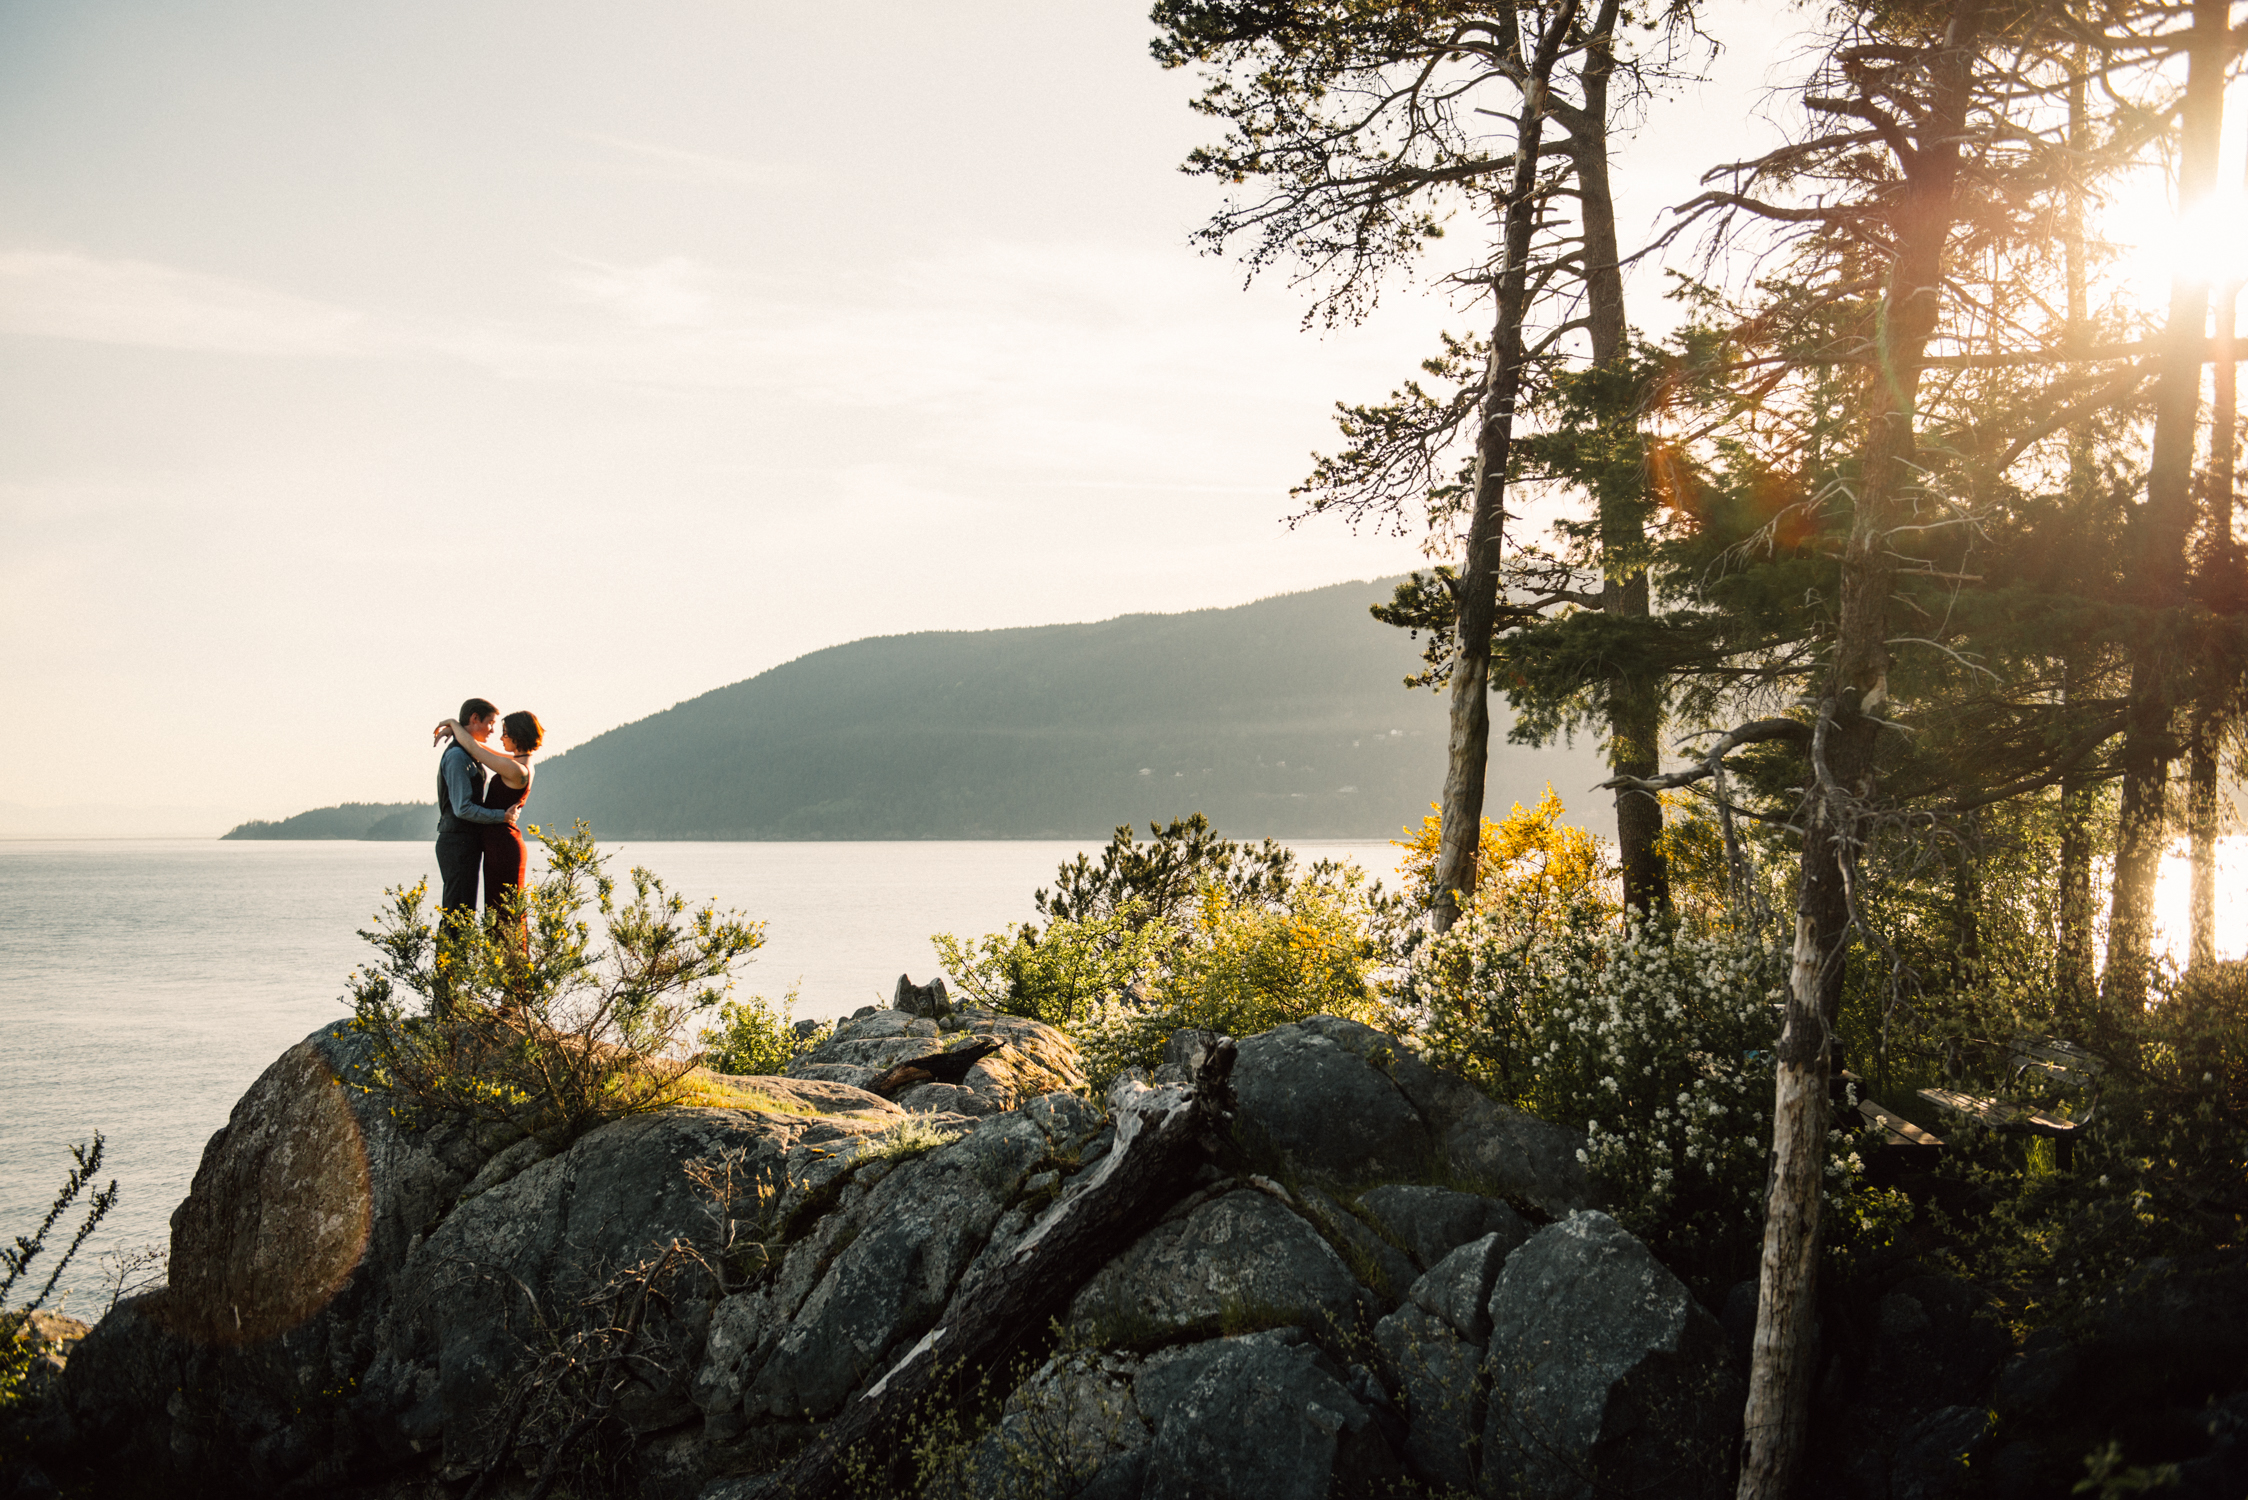 005_whytecliff_vancouver_bc_engagement.jpg